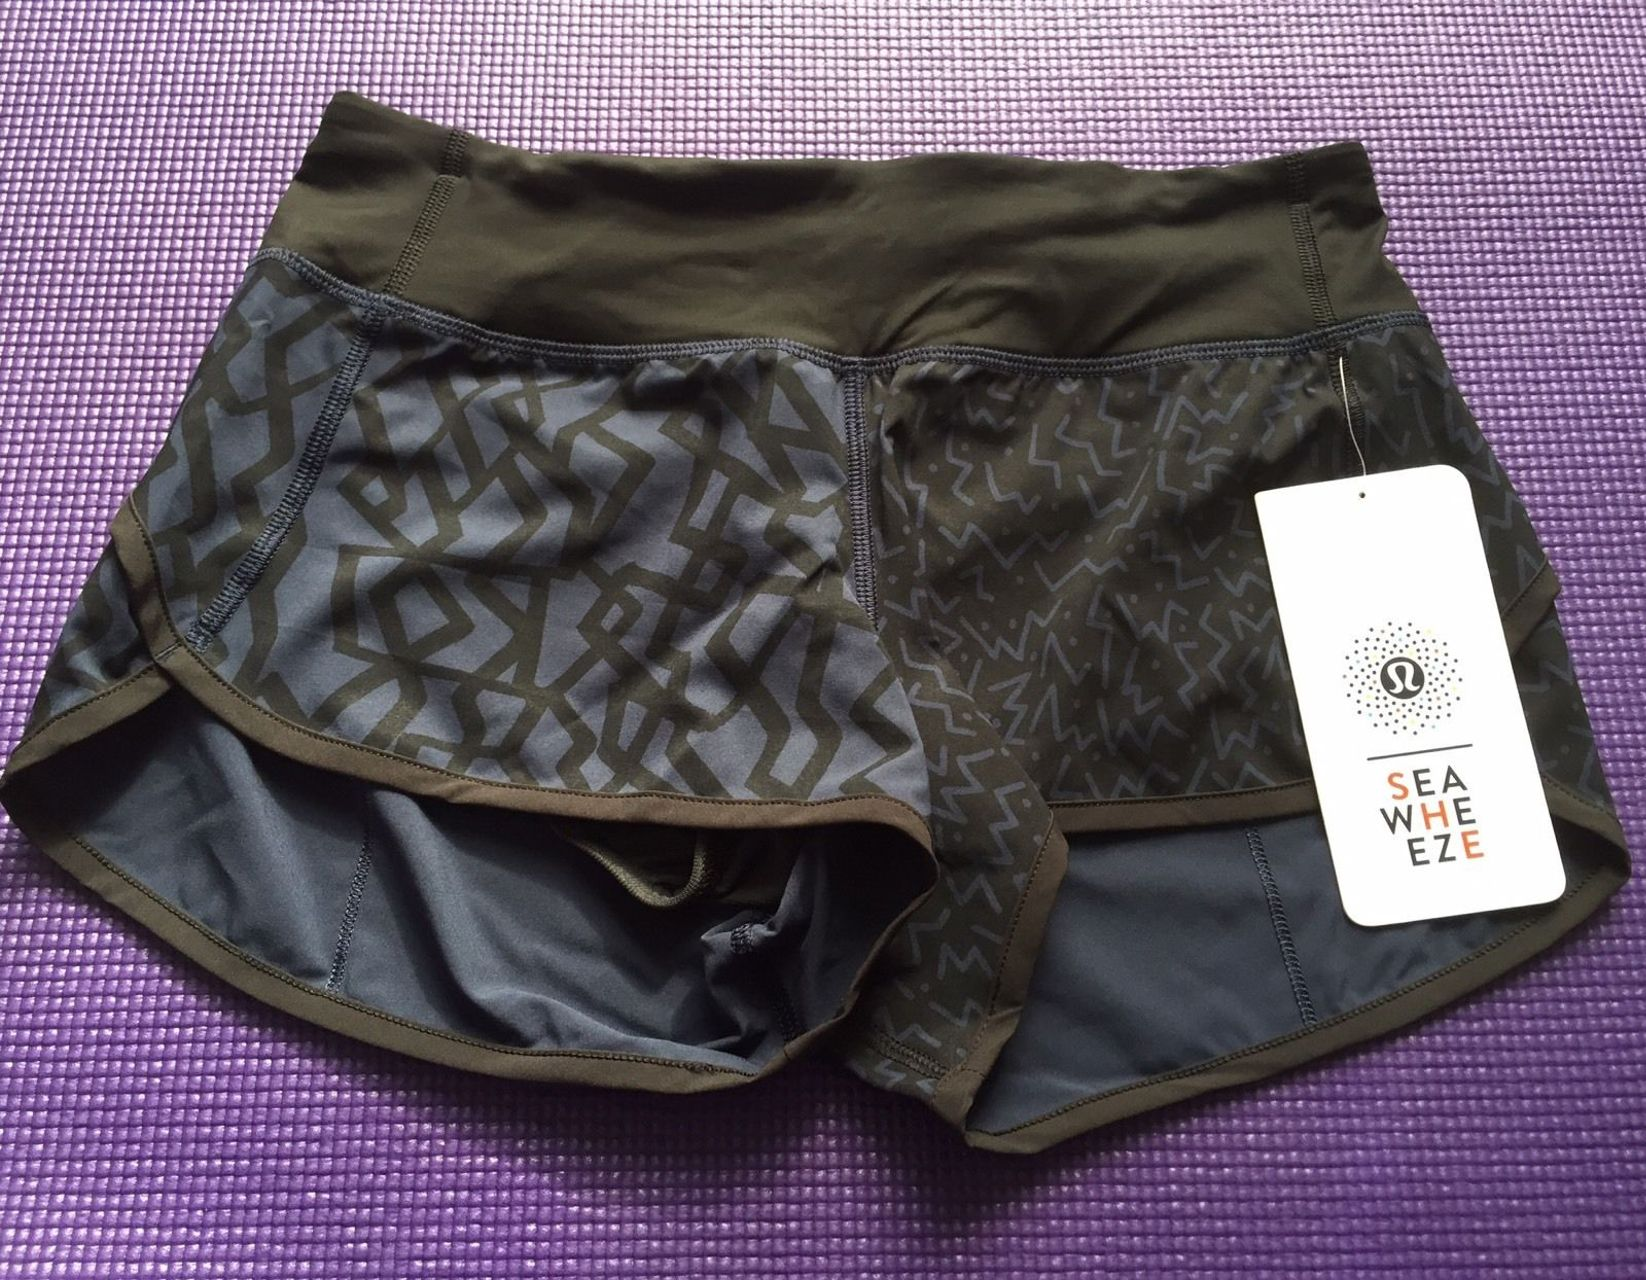 Lululemon Speed Short - 2015 Seawheeze - Half Navy Half Black with Squiggles